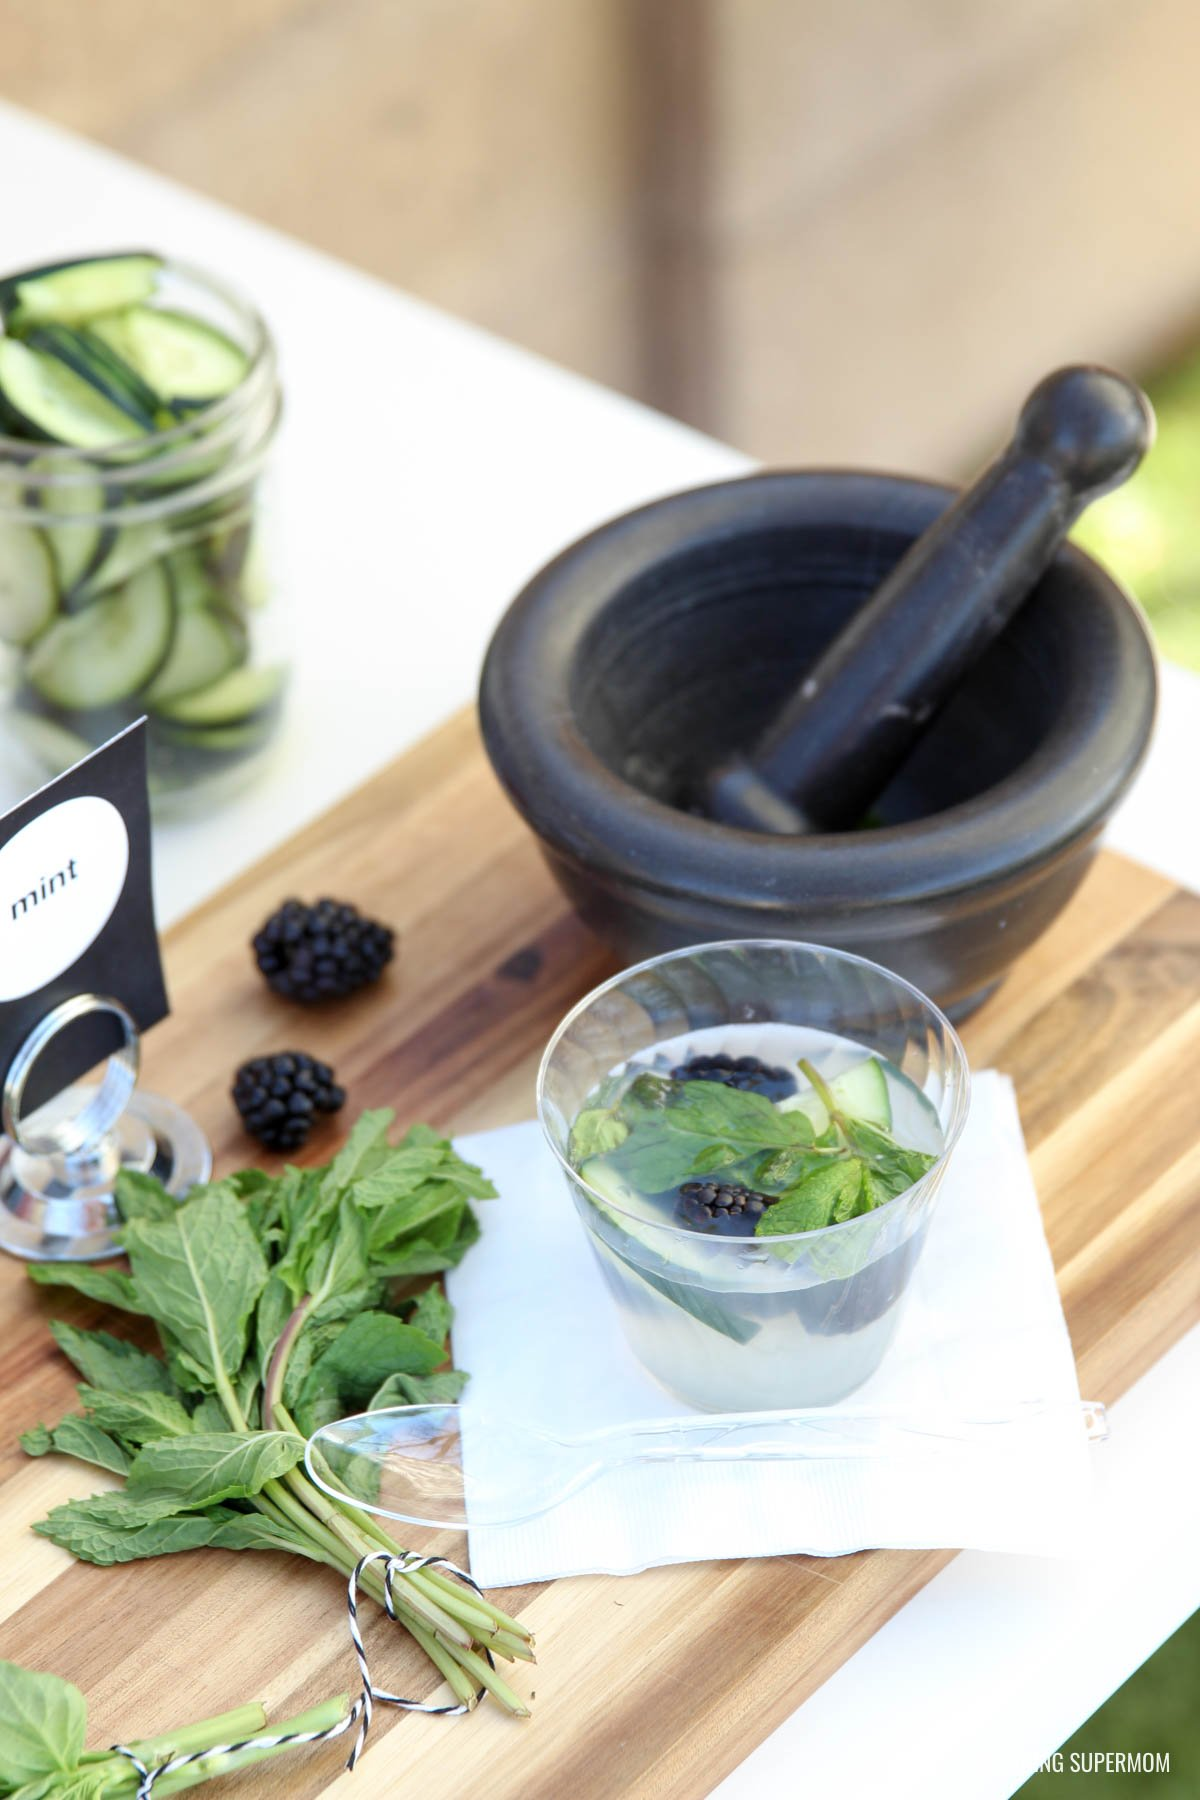 Mix up Blackberry, Cucumber and Mint Lemonade - love this Lemoande Bar idea for a stylish backyard BBQ via @PagingSupermom